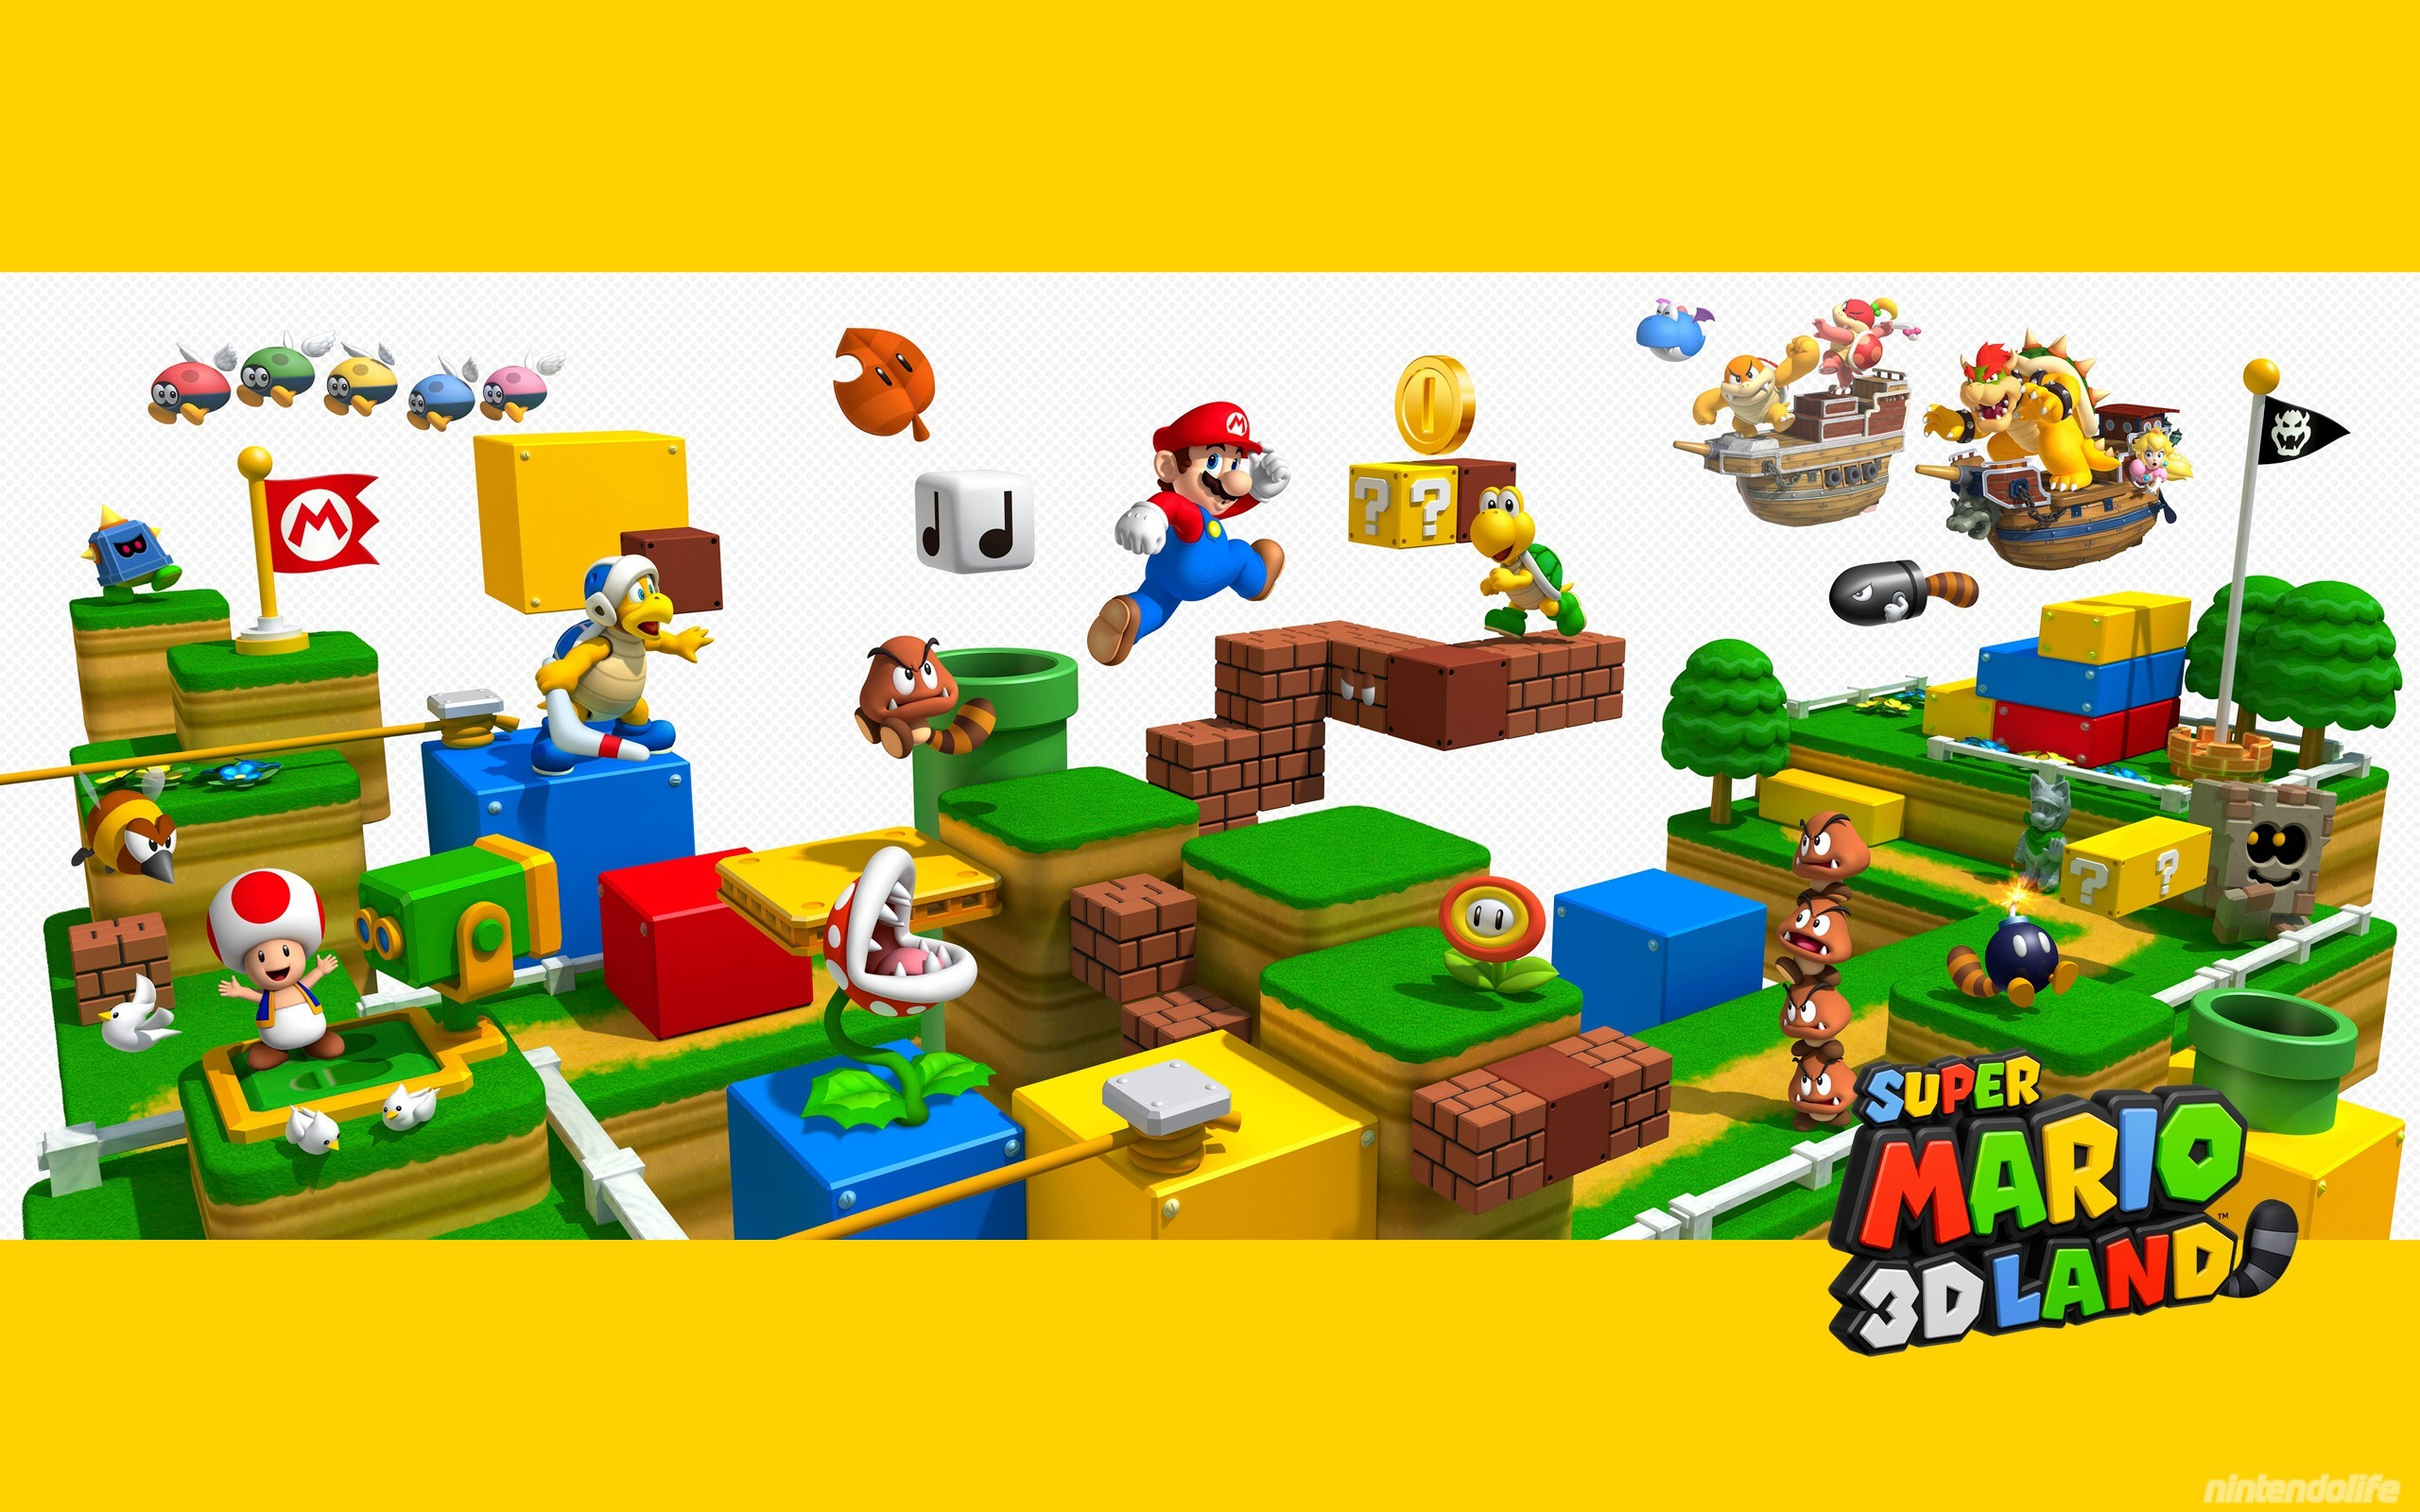 2560x1600 Super Mario 3D Land - Wallpaper 3